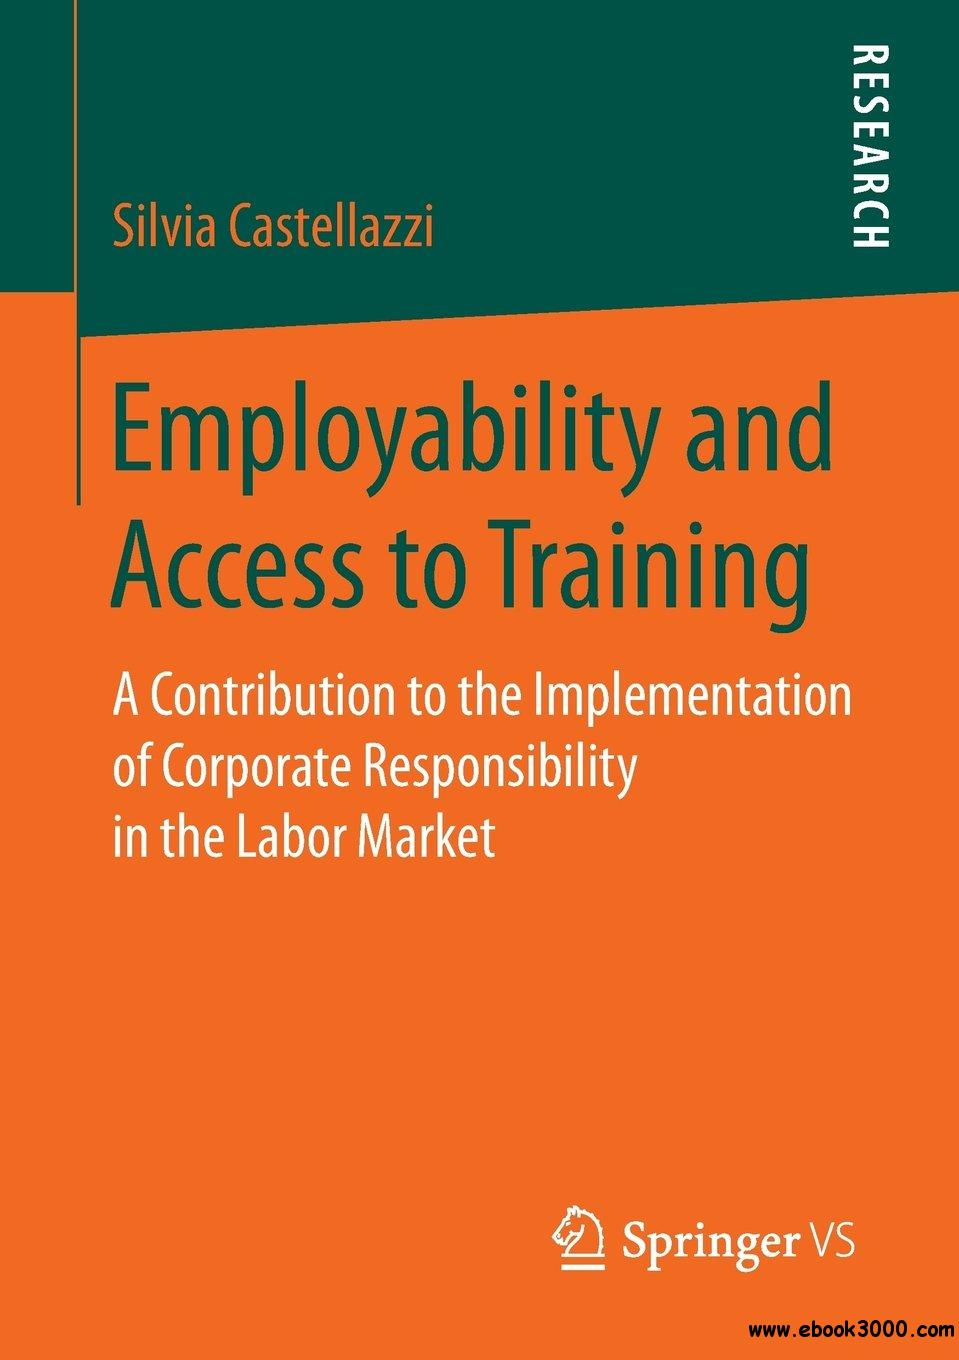 Employability and Access to Training: A Contribution to the Implementation of Corporate Responsibility in the Labor Market